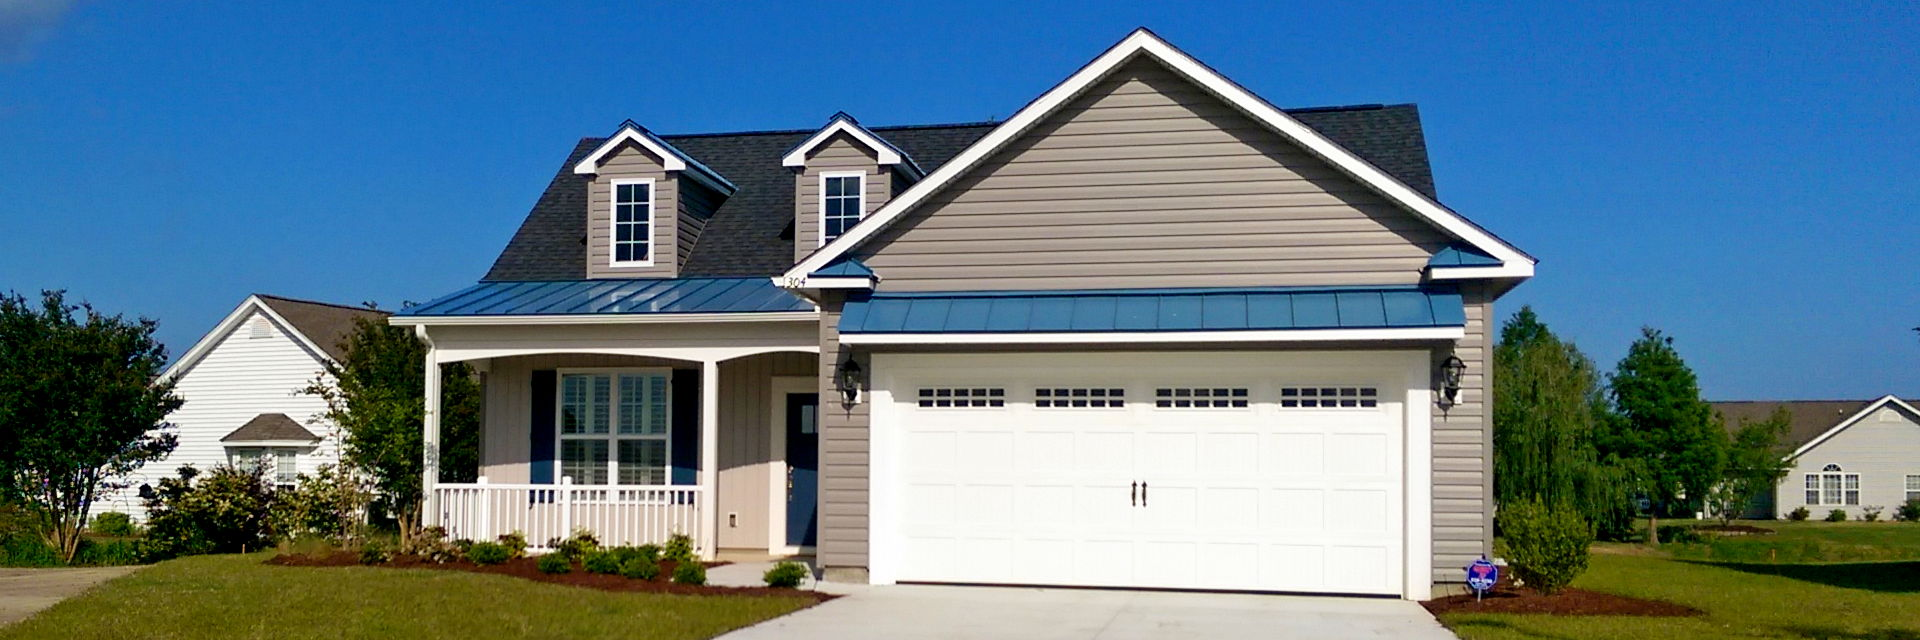 Budget Priced New Construction Home for Sale in Myrtle Beach